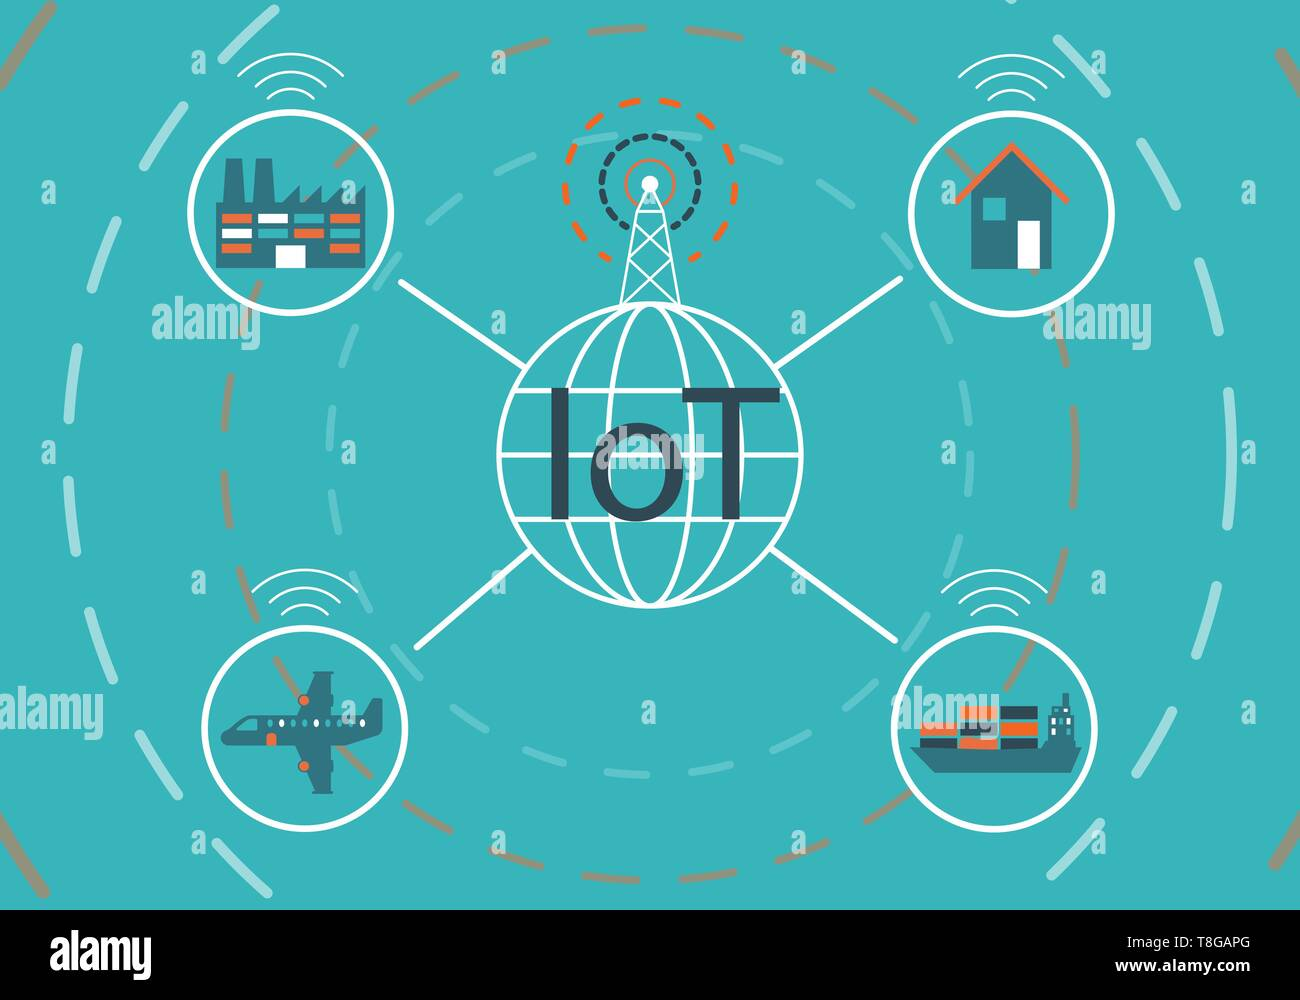 Internet of Things (IoT) concept with simple icons - Stock Image